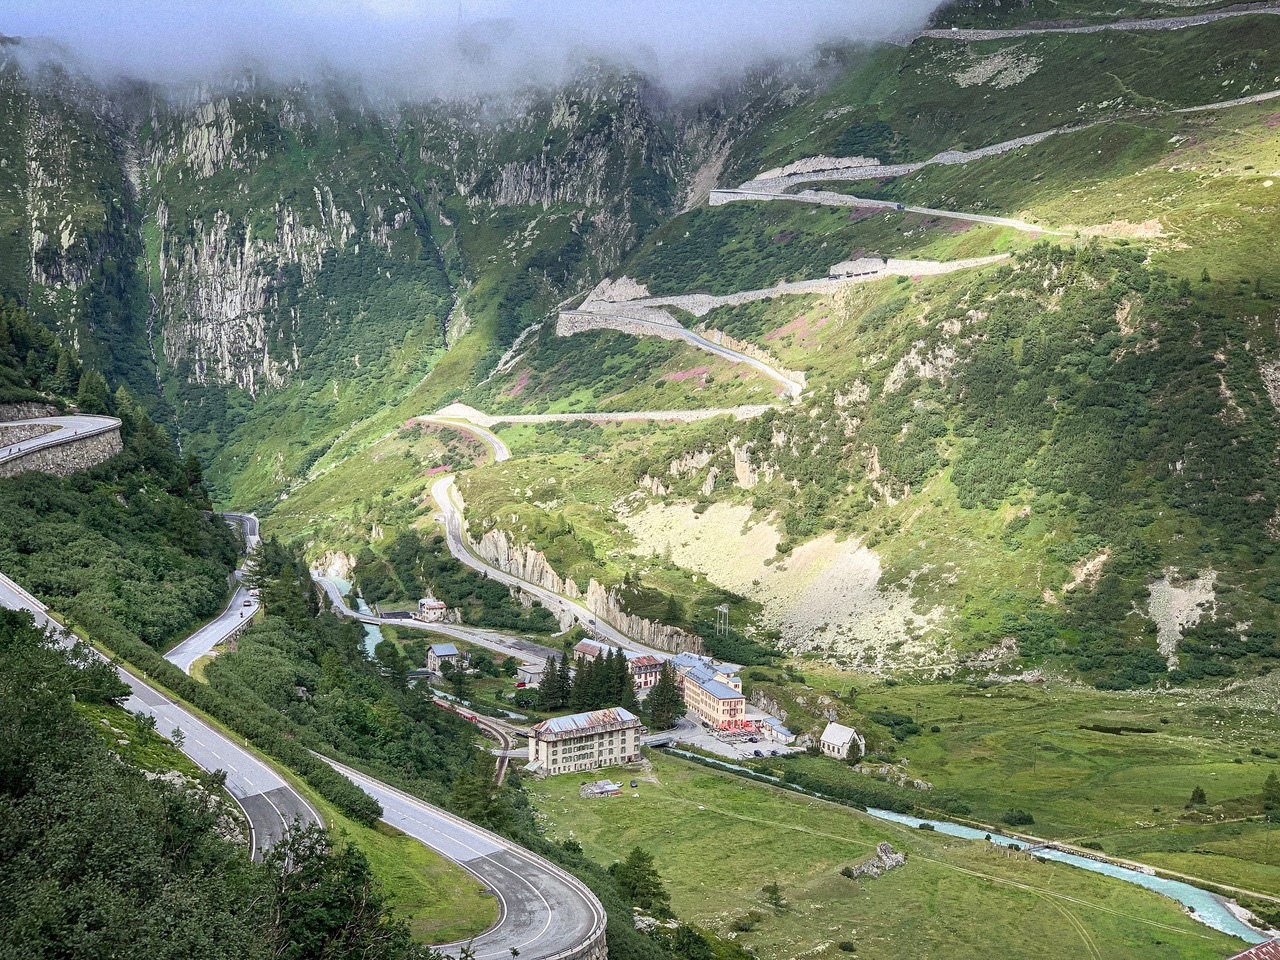 A Private Trip the winding roads of Switzerland